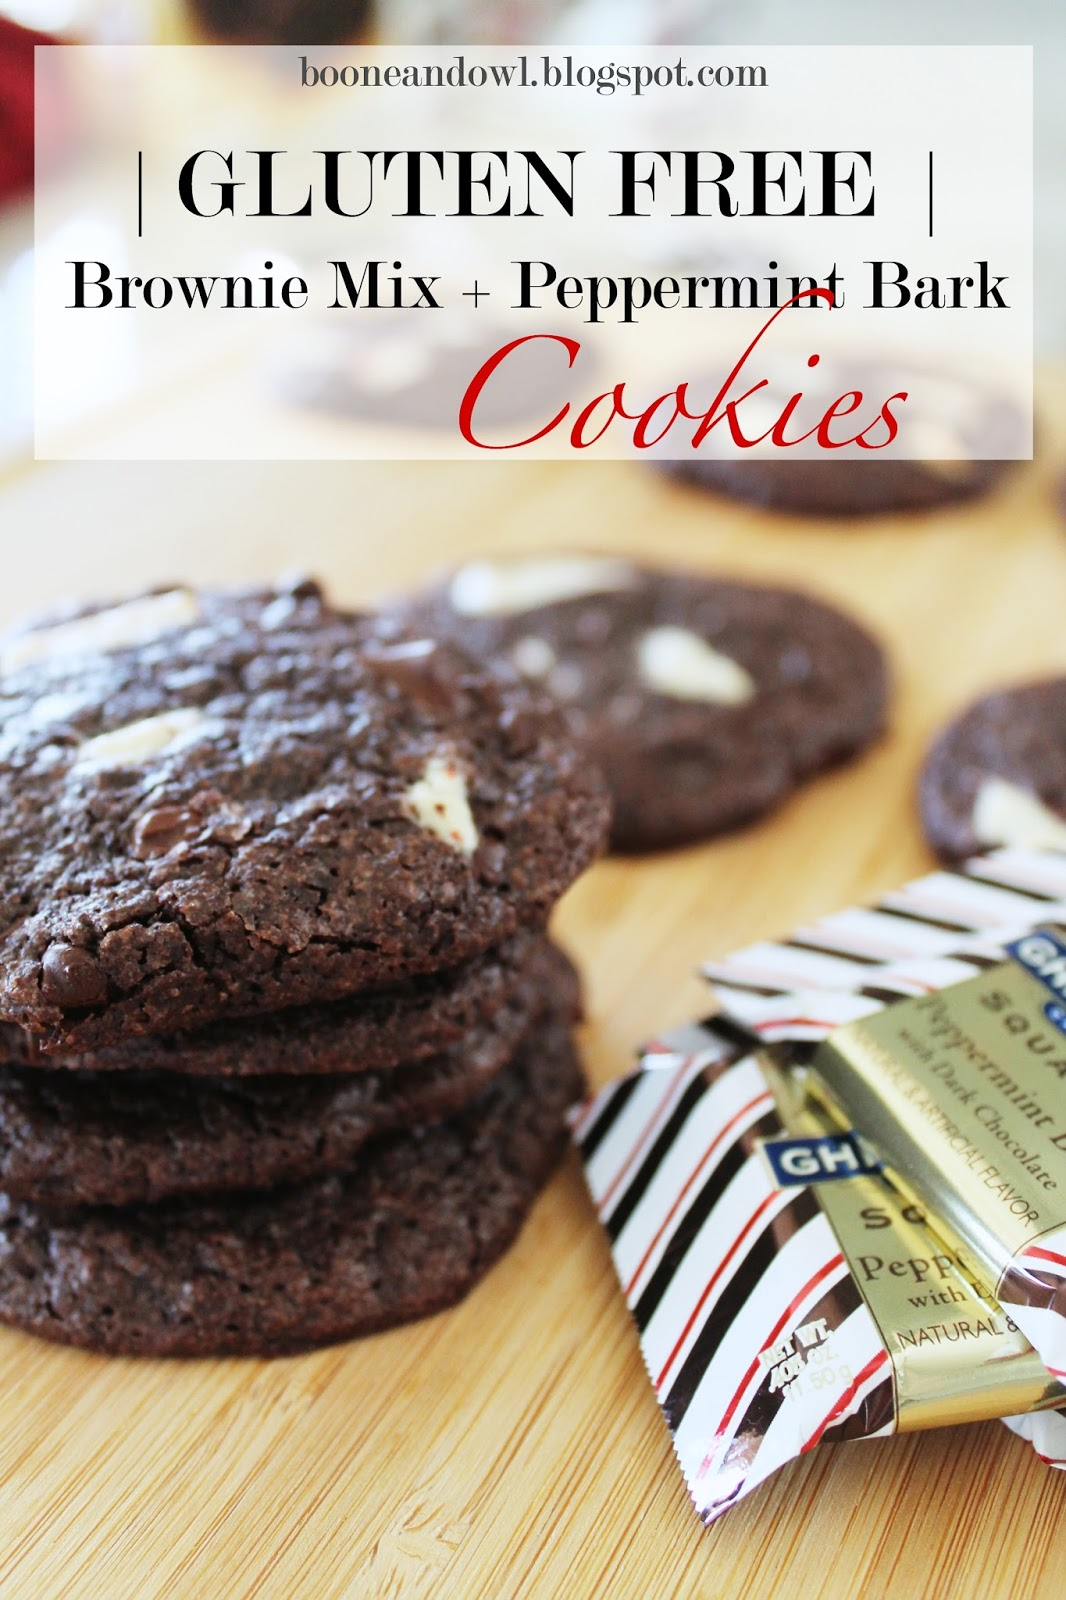 Gluten free brownie mix  and peppermint bark cookies, gluten free chocolate cookies, brownie mix cookies, gluten free brownies, peppermint bark cookies